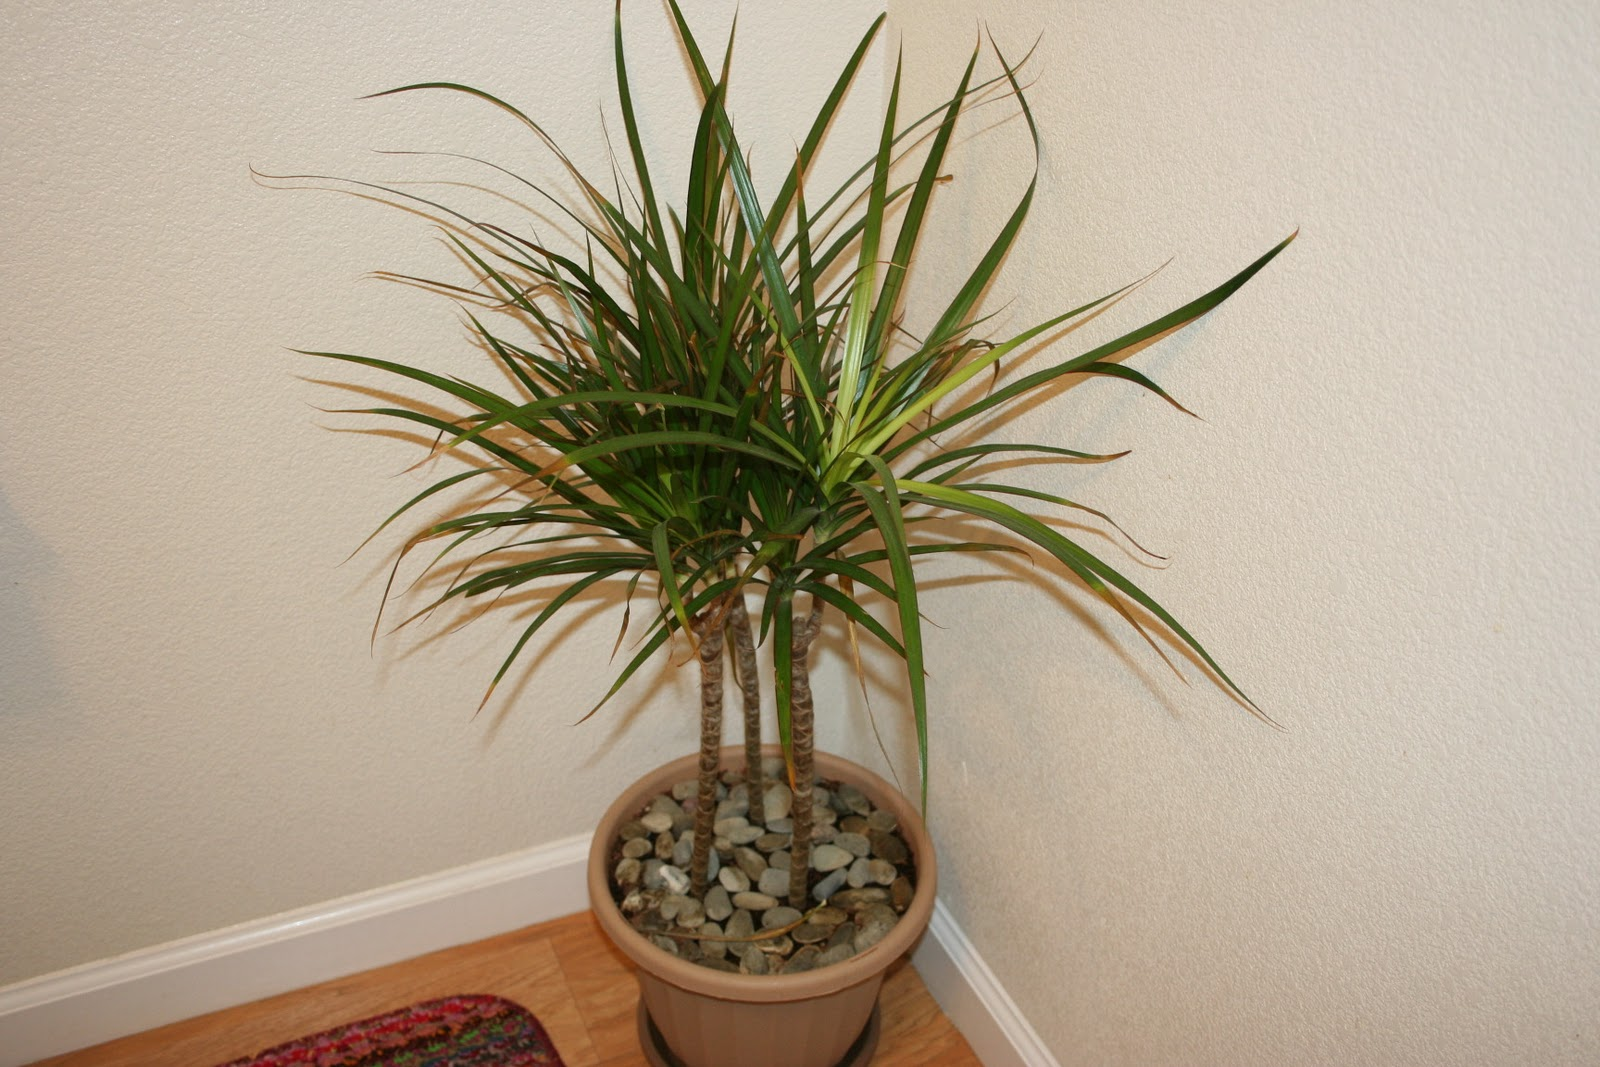 The-Dragon-Tree-houseplants Palm House Plant Identification on palm plants care of, palm plant diseases, palm grass plant, common house plants identification, palm fern house plant, palm trees, palm plant leaves turning brown, palm looking house plant, palm to grow good in homes, palm leaf house plant, palm identification guide, tropical trees identification, palm house greenhouse, palm fruit identification, palm like plants, indoor house trees identification, palm house plant in a trim,